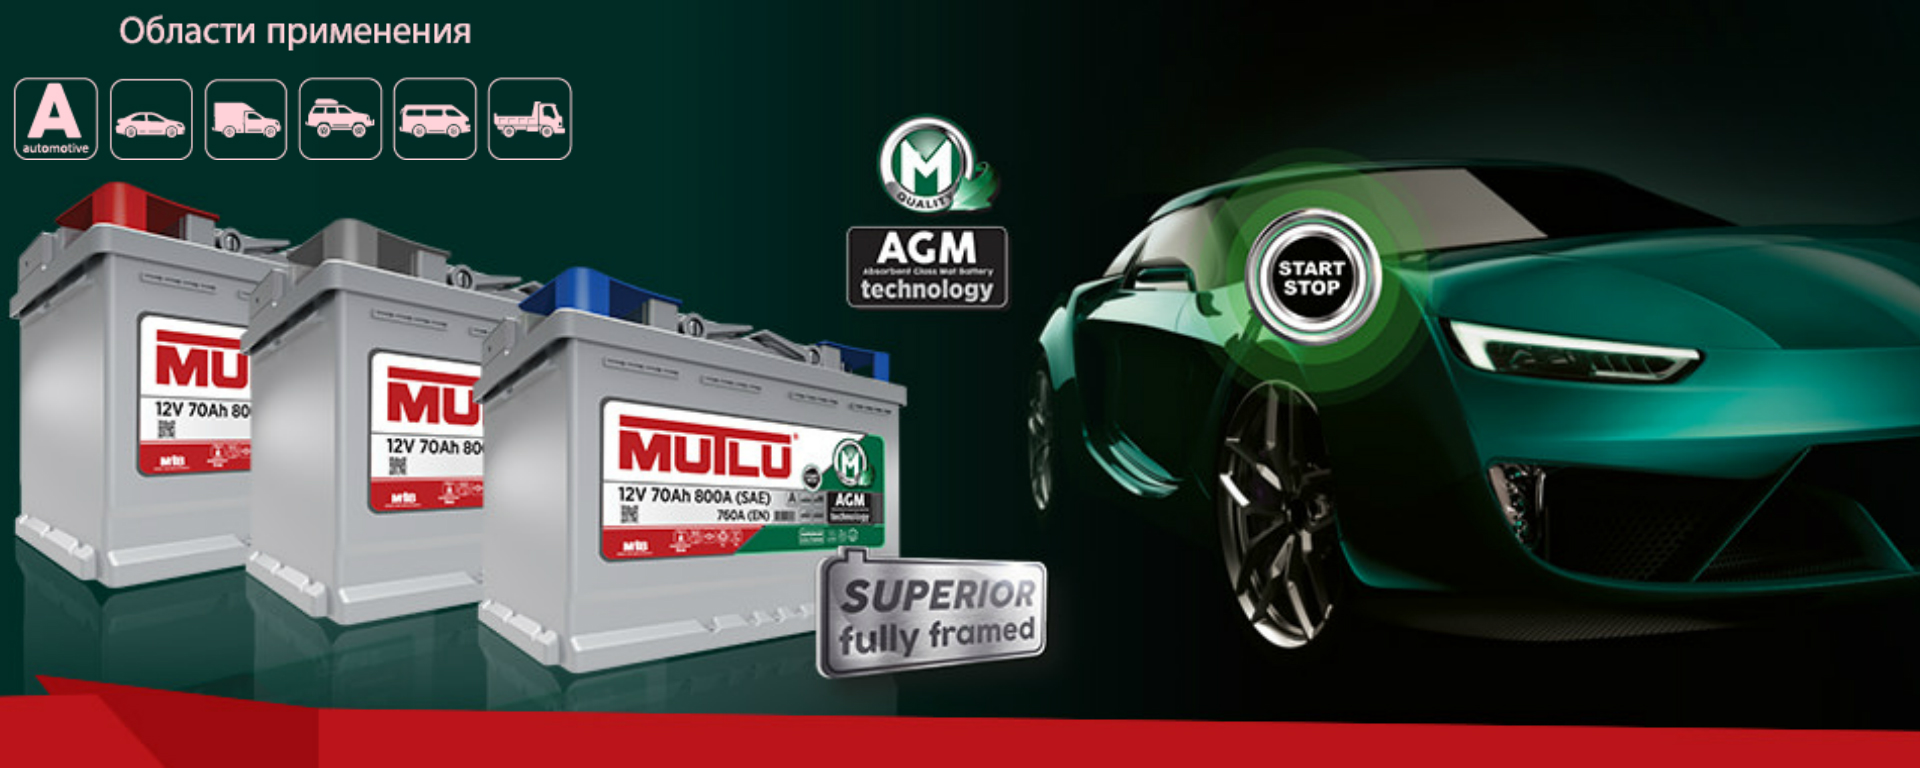 mutlu agm automotive